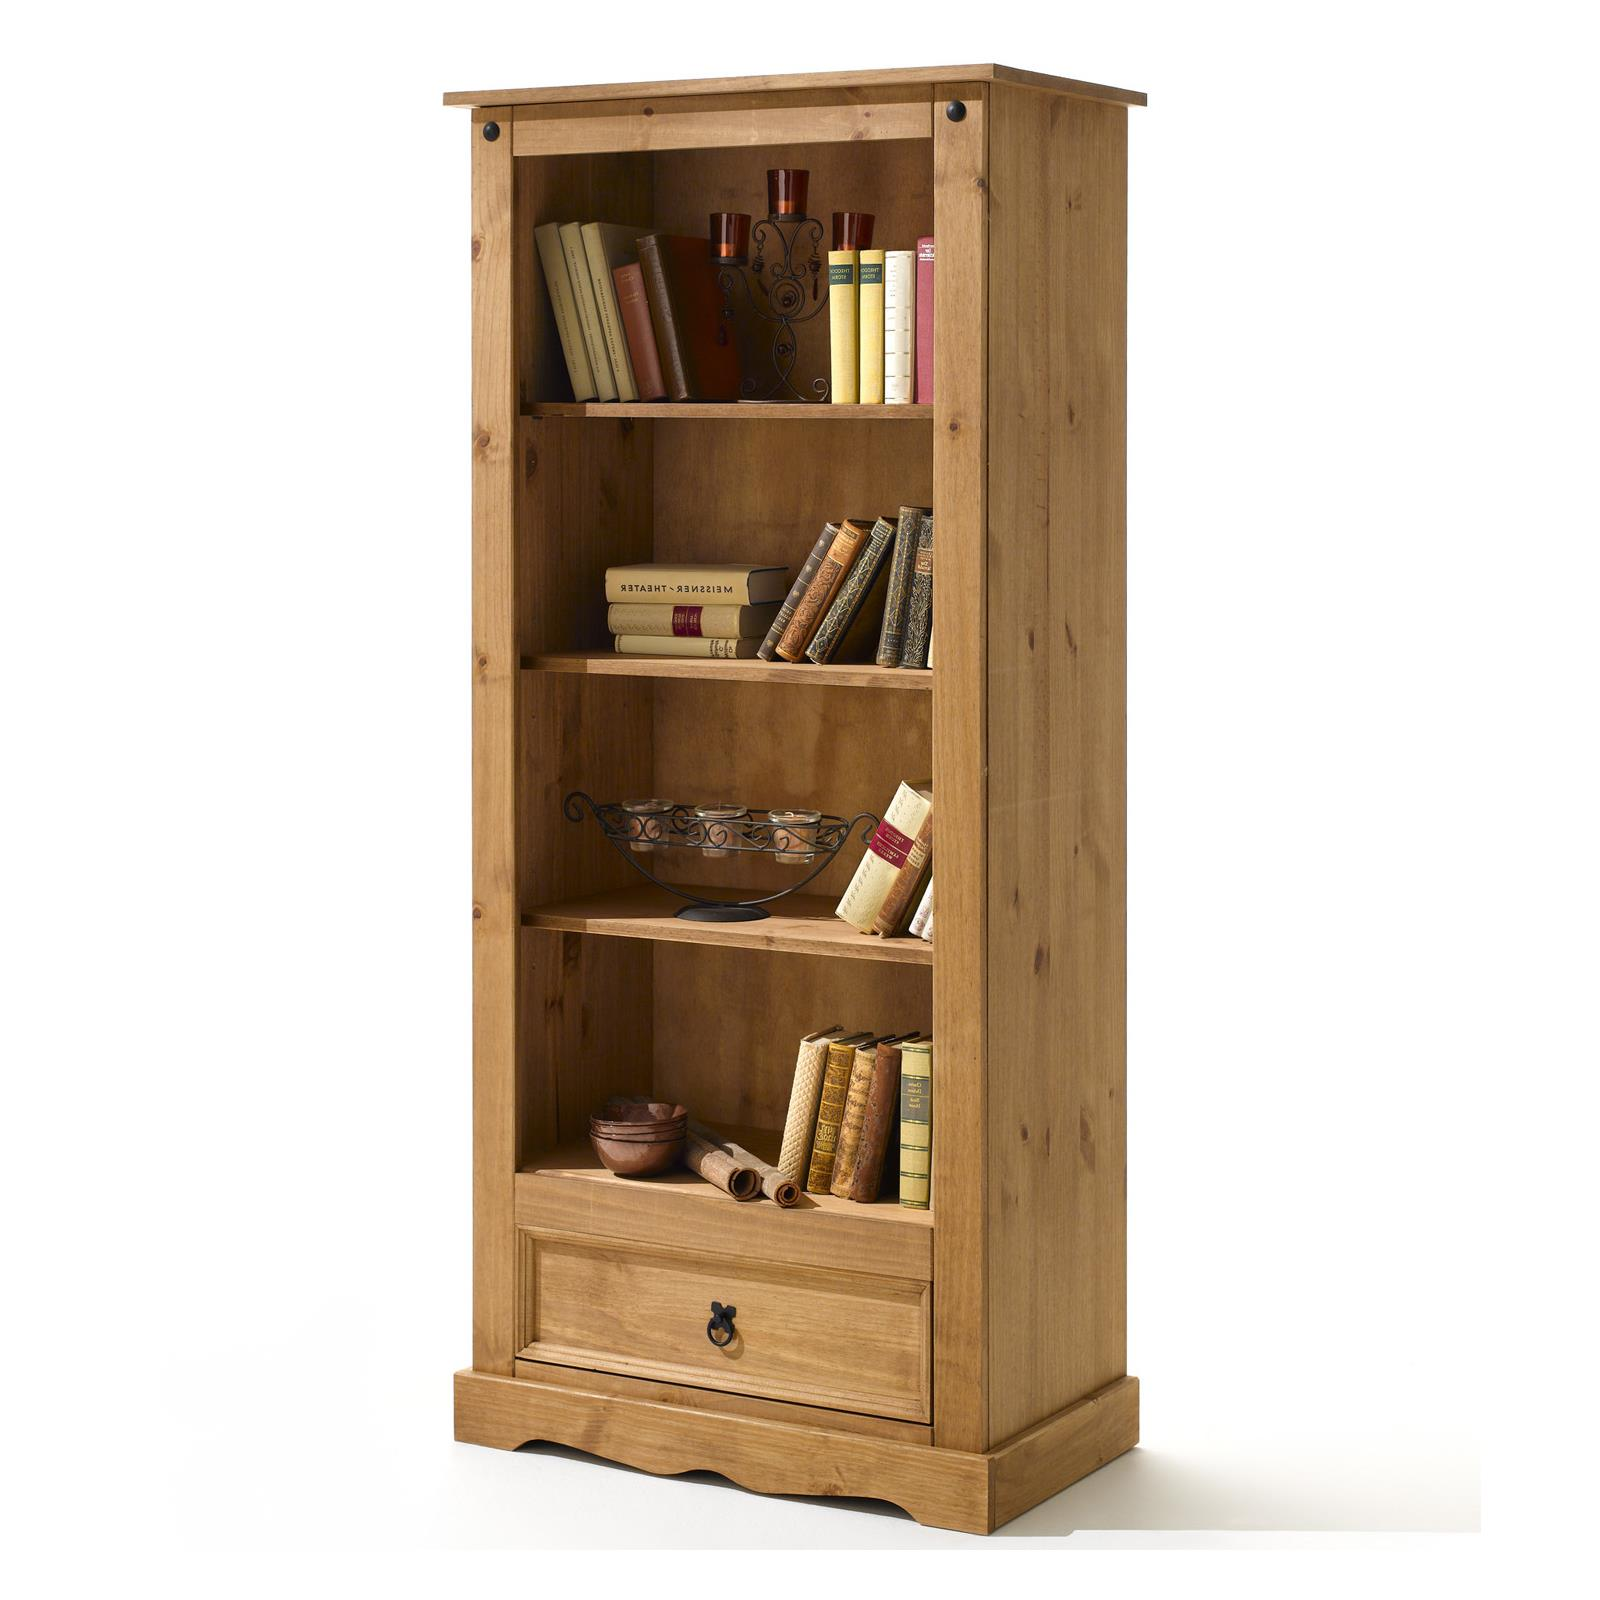 Biblioth que en pin tequila style mexicain finition cir e mobil meubles - Bibliotheque en pin massif ...